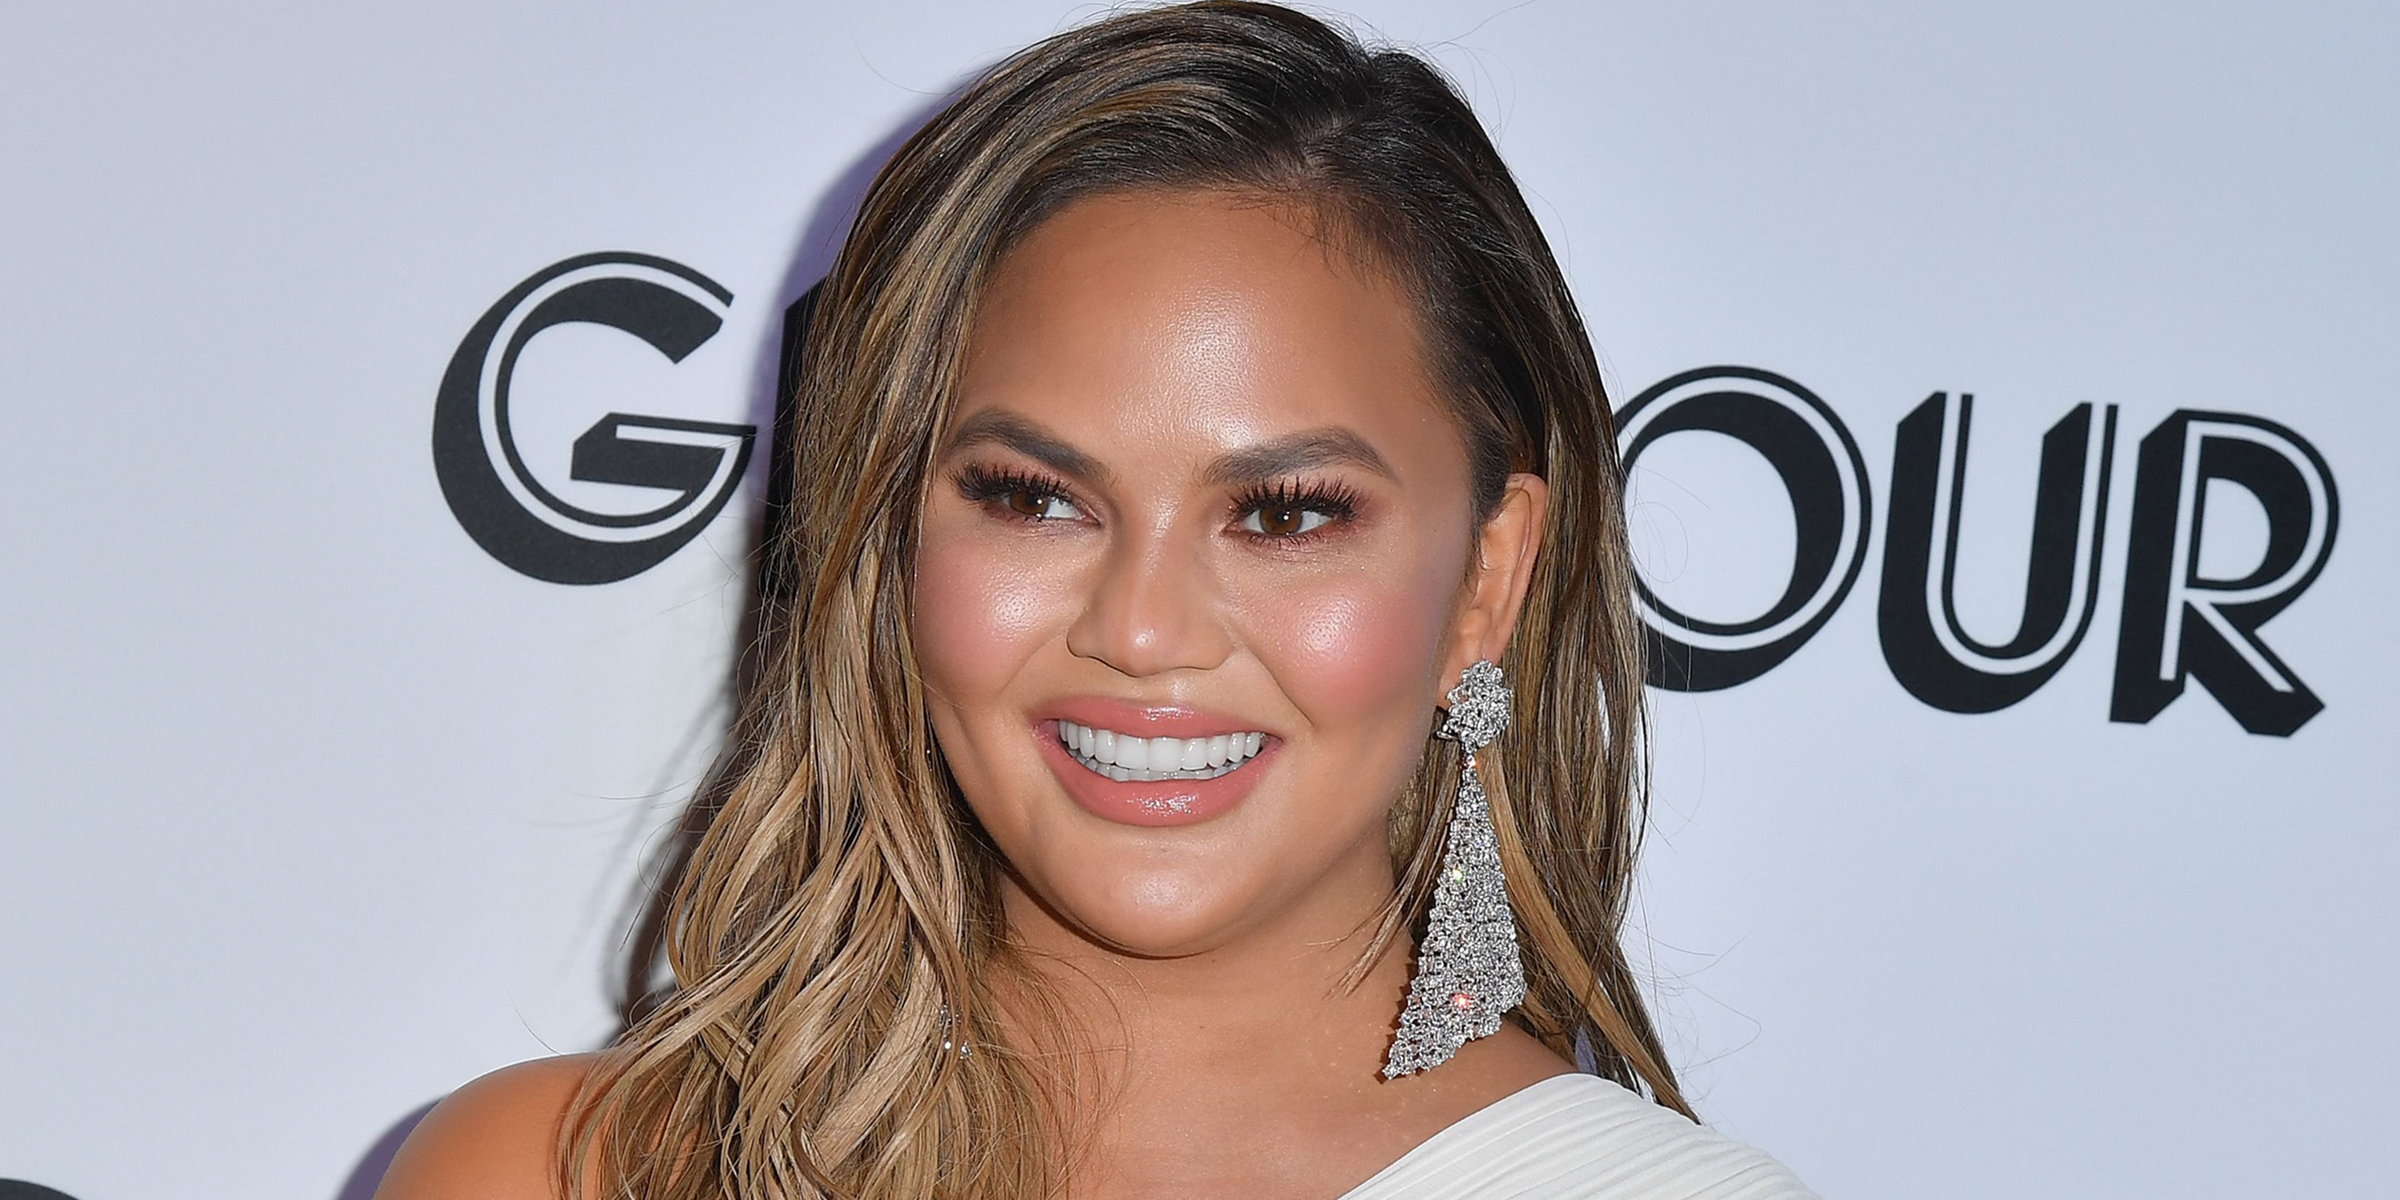 2019 Christine Teigen nude photos 2019